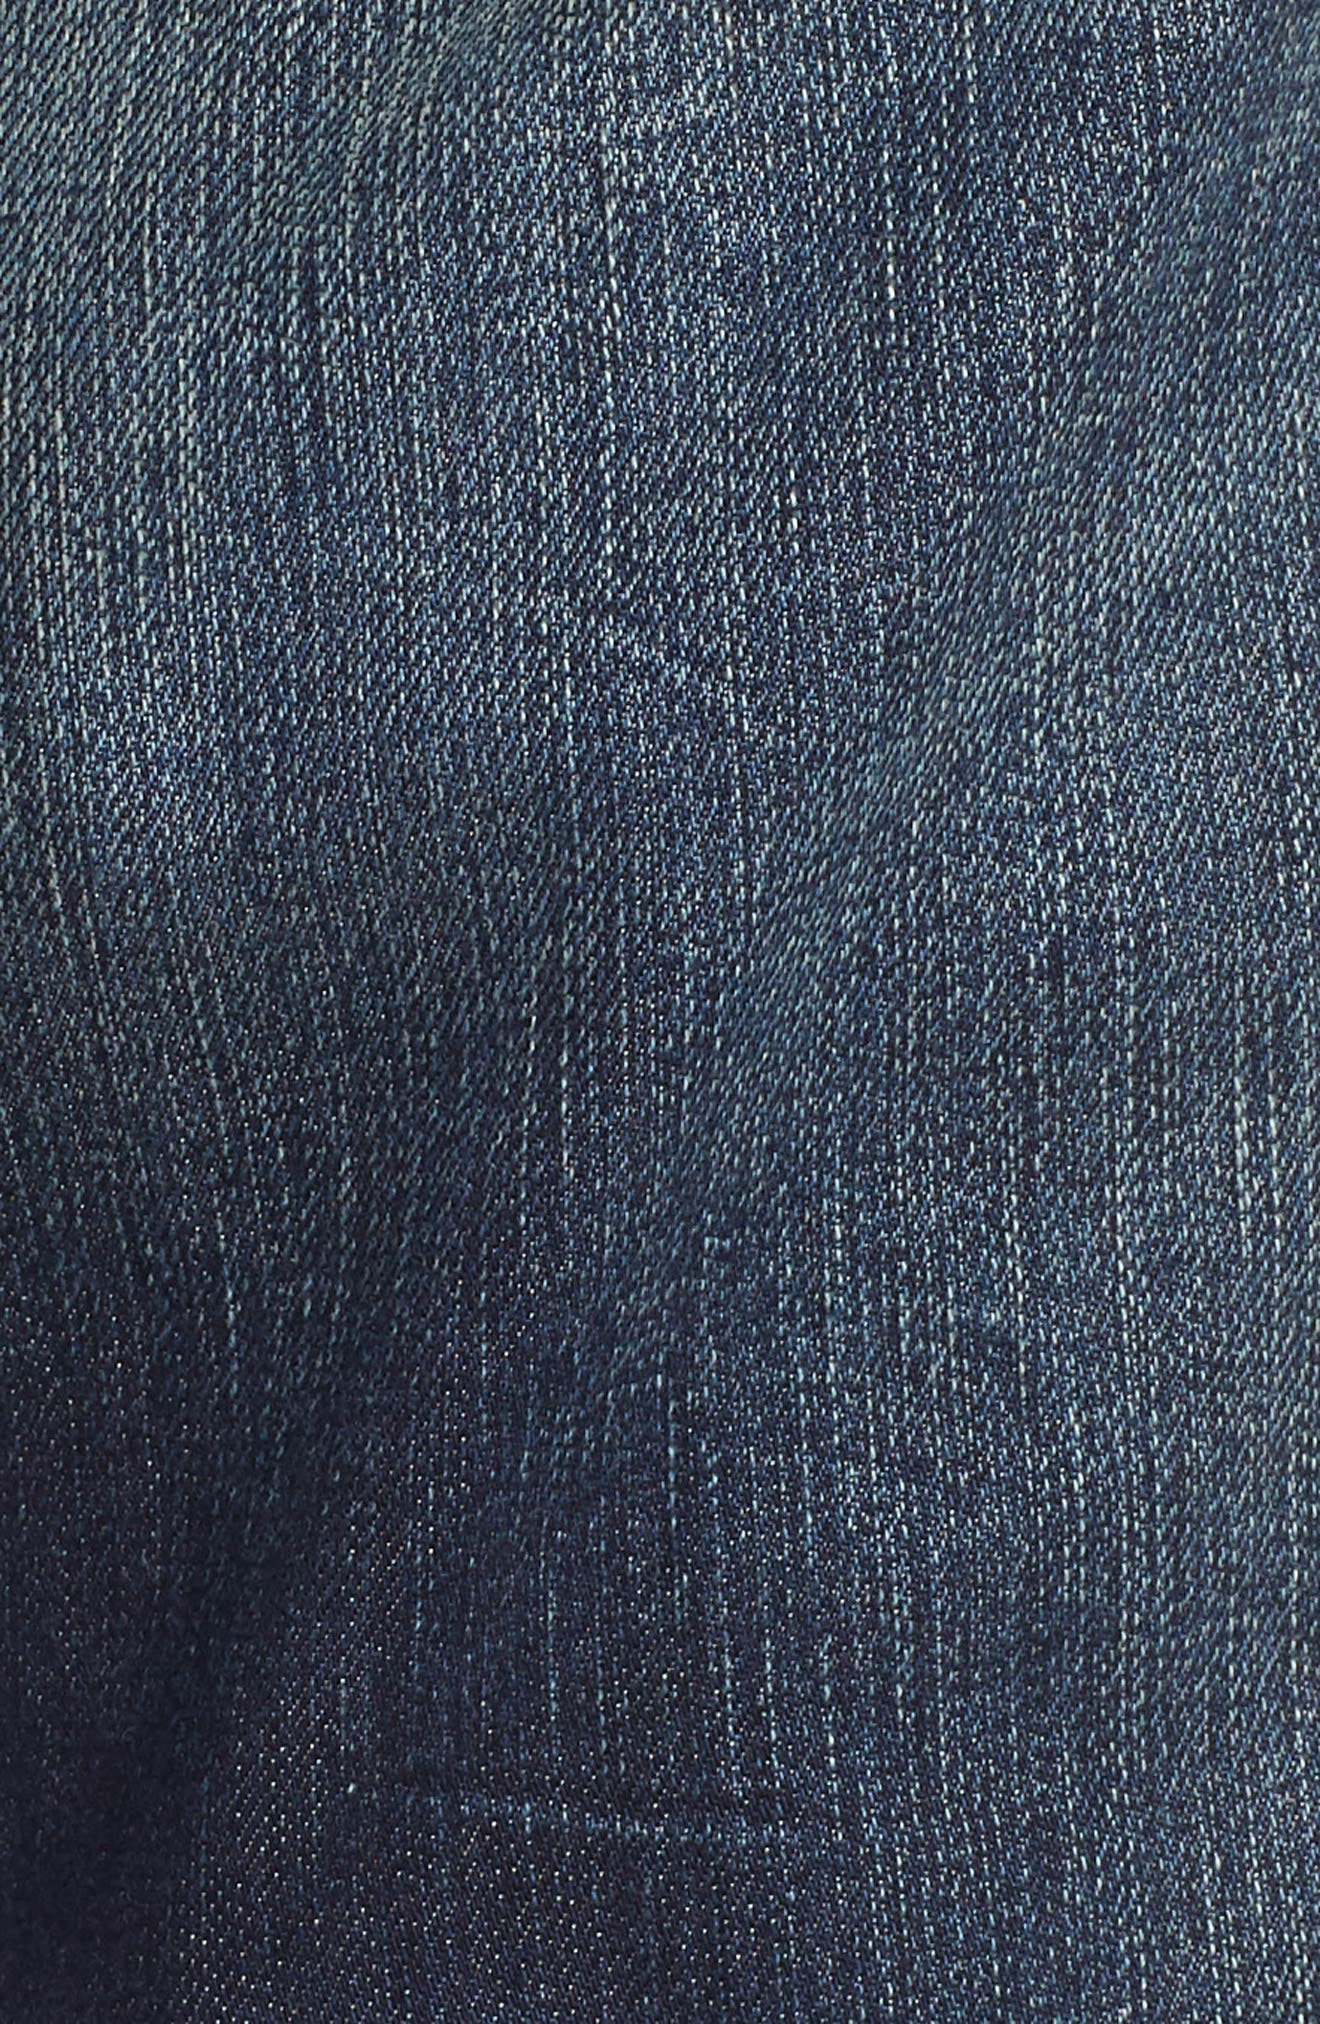 Ricky Relaxed Fit Jeans,                             Alternate thumbnail 5, color,                             Combat Blues